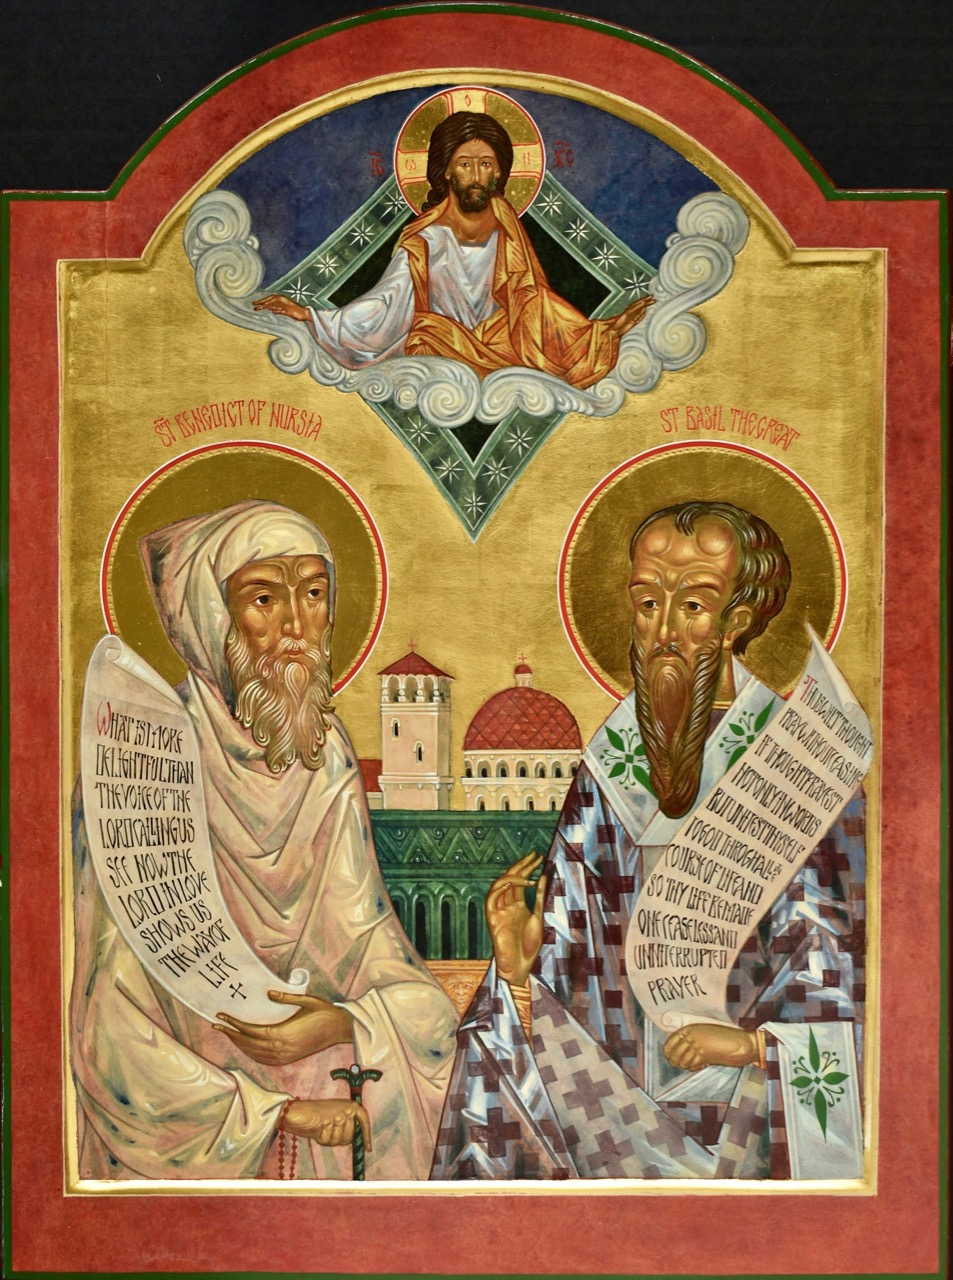 Sts Benedict of Nursia and Basil the Great